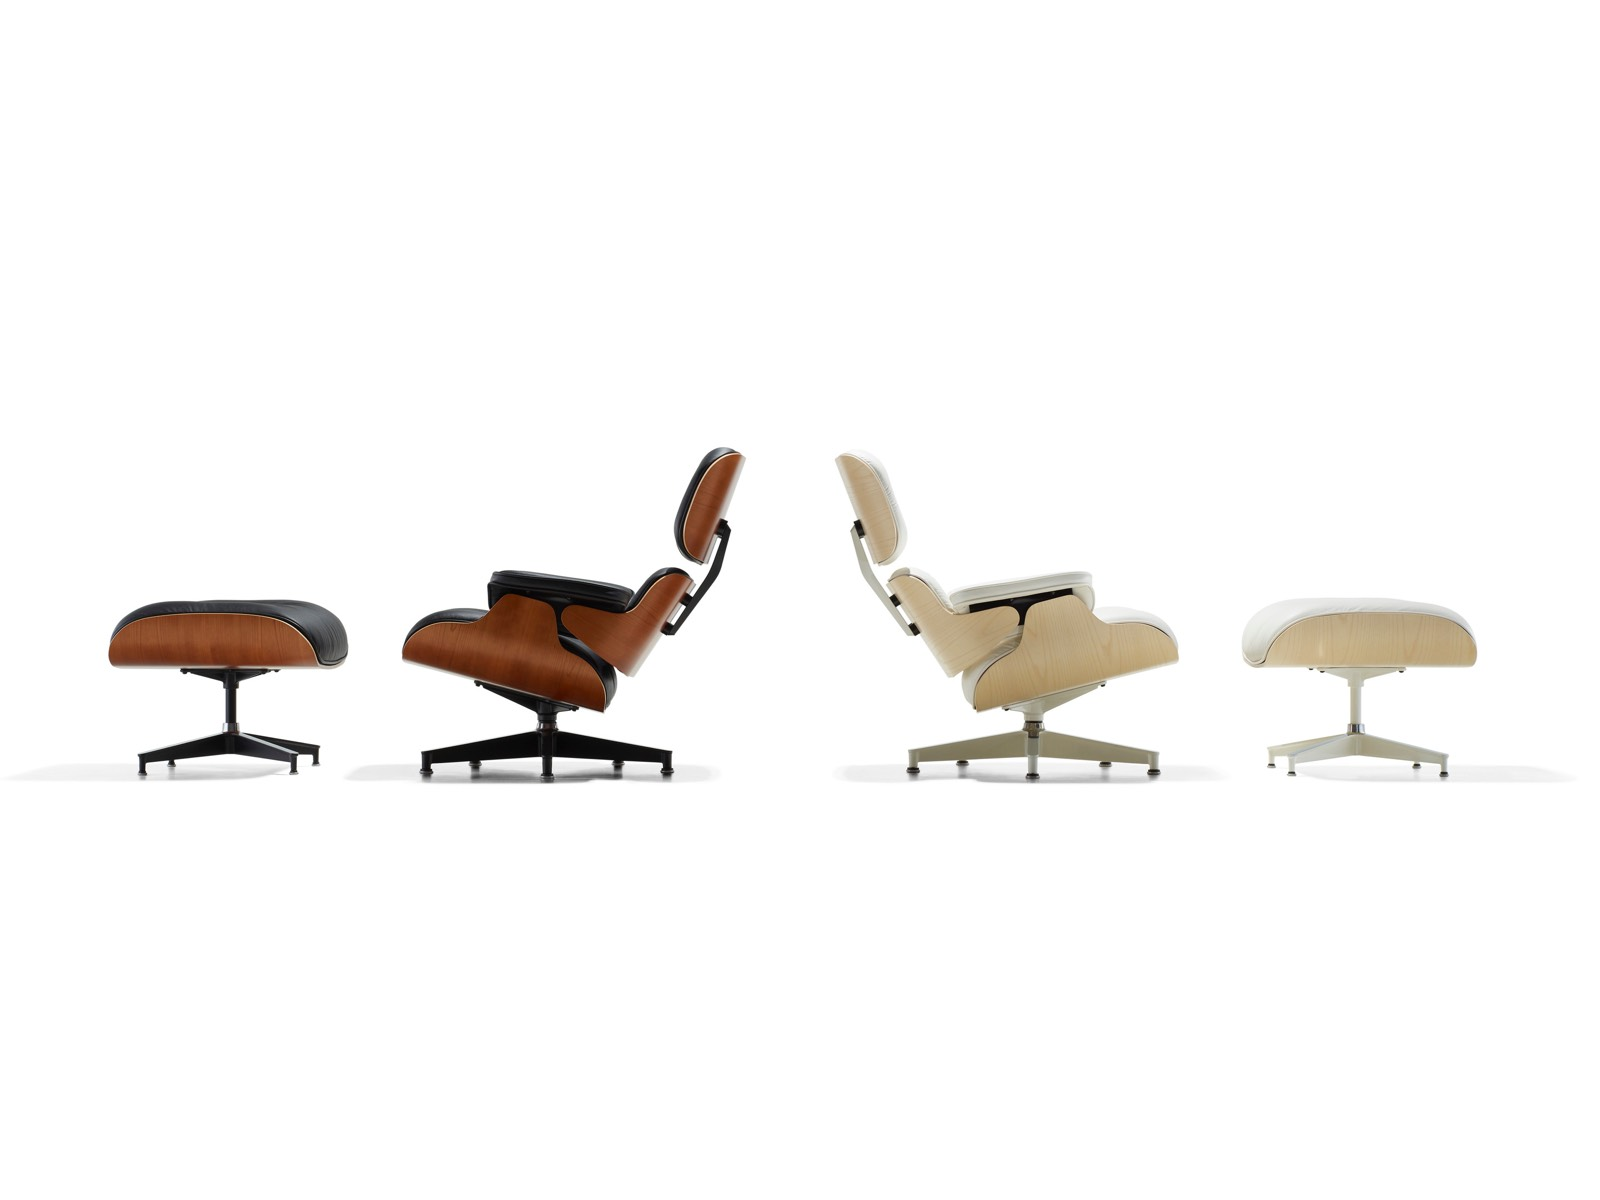 Eames Lounge Office Chair Eames Lounge And Ottoman Lounge Chair Herman Miller